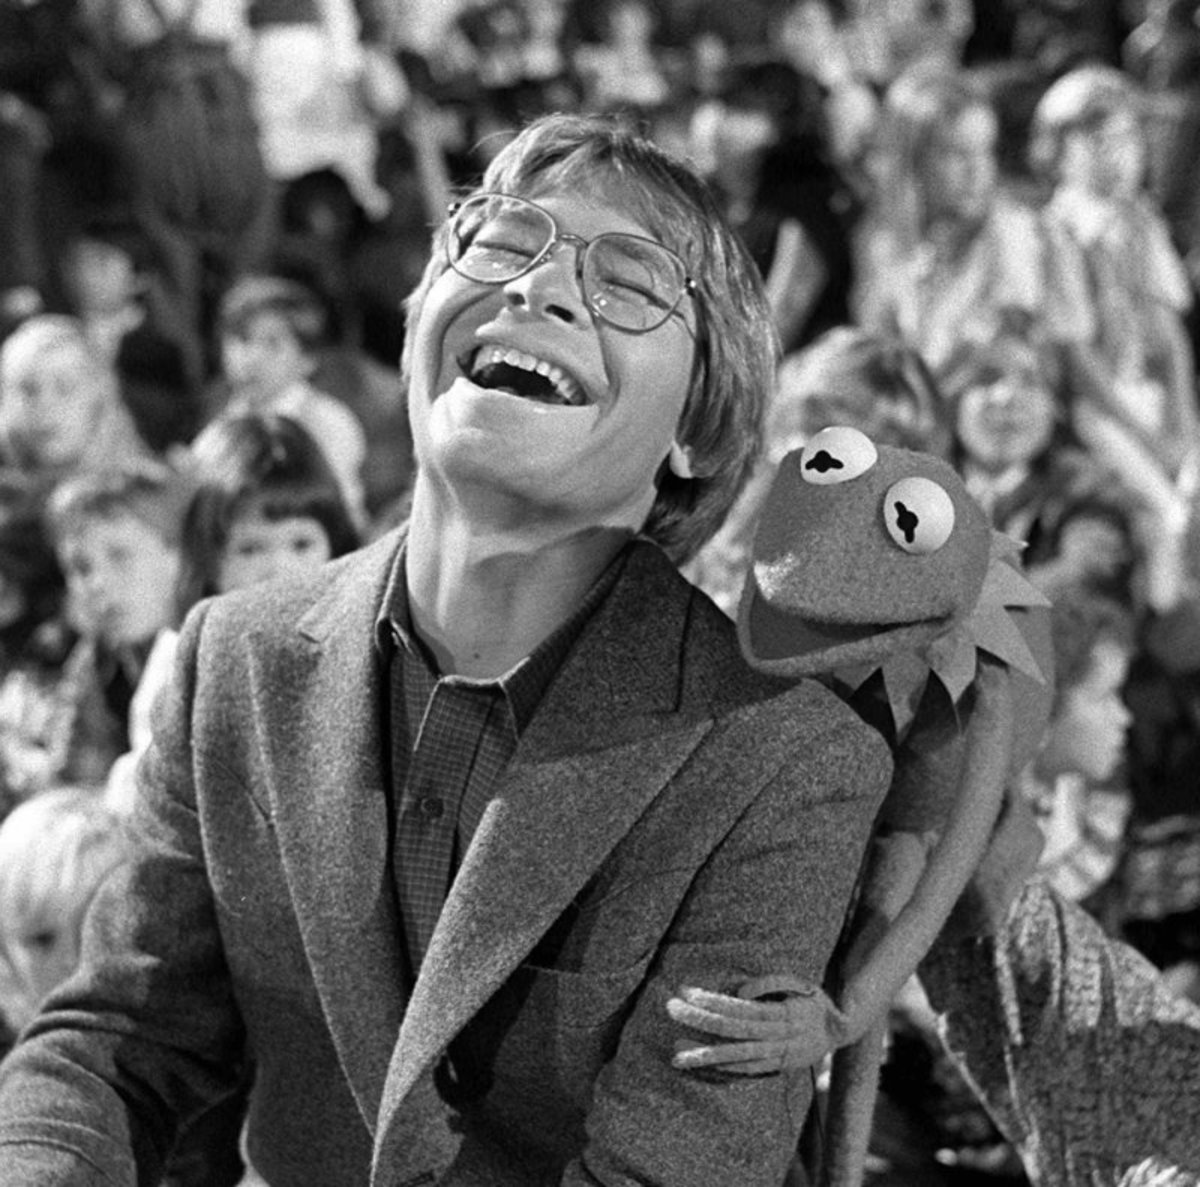 John Denver and Kermit the Frog